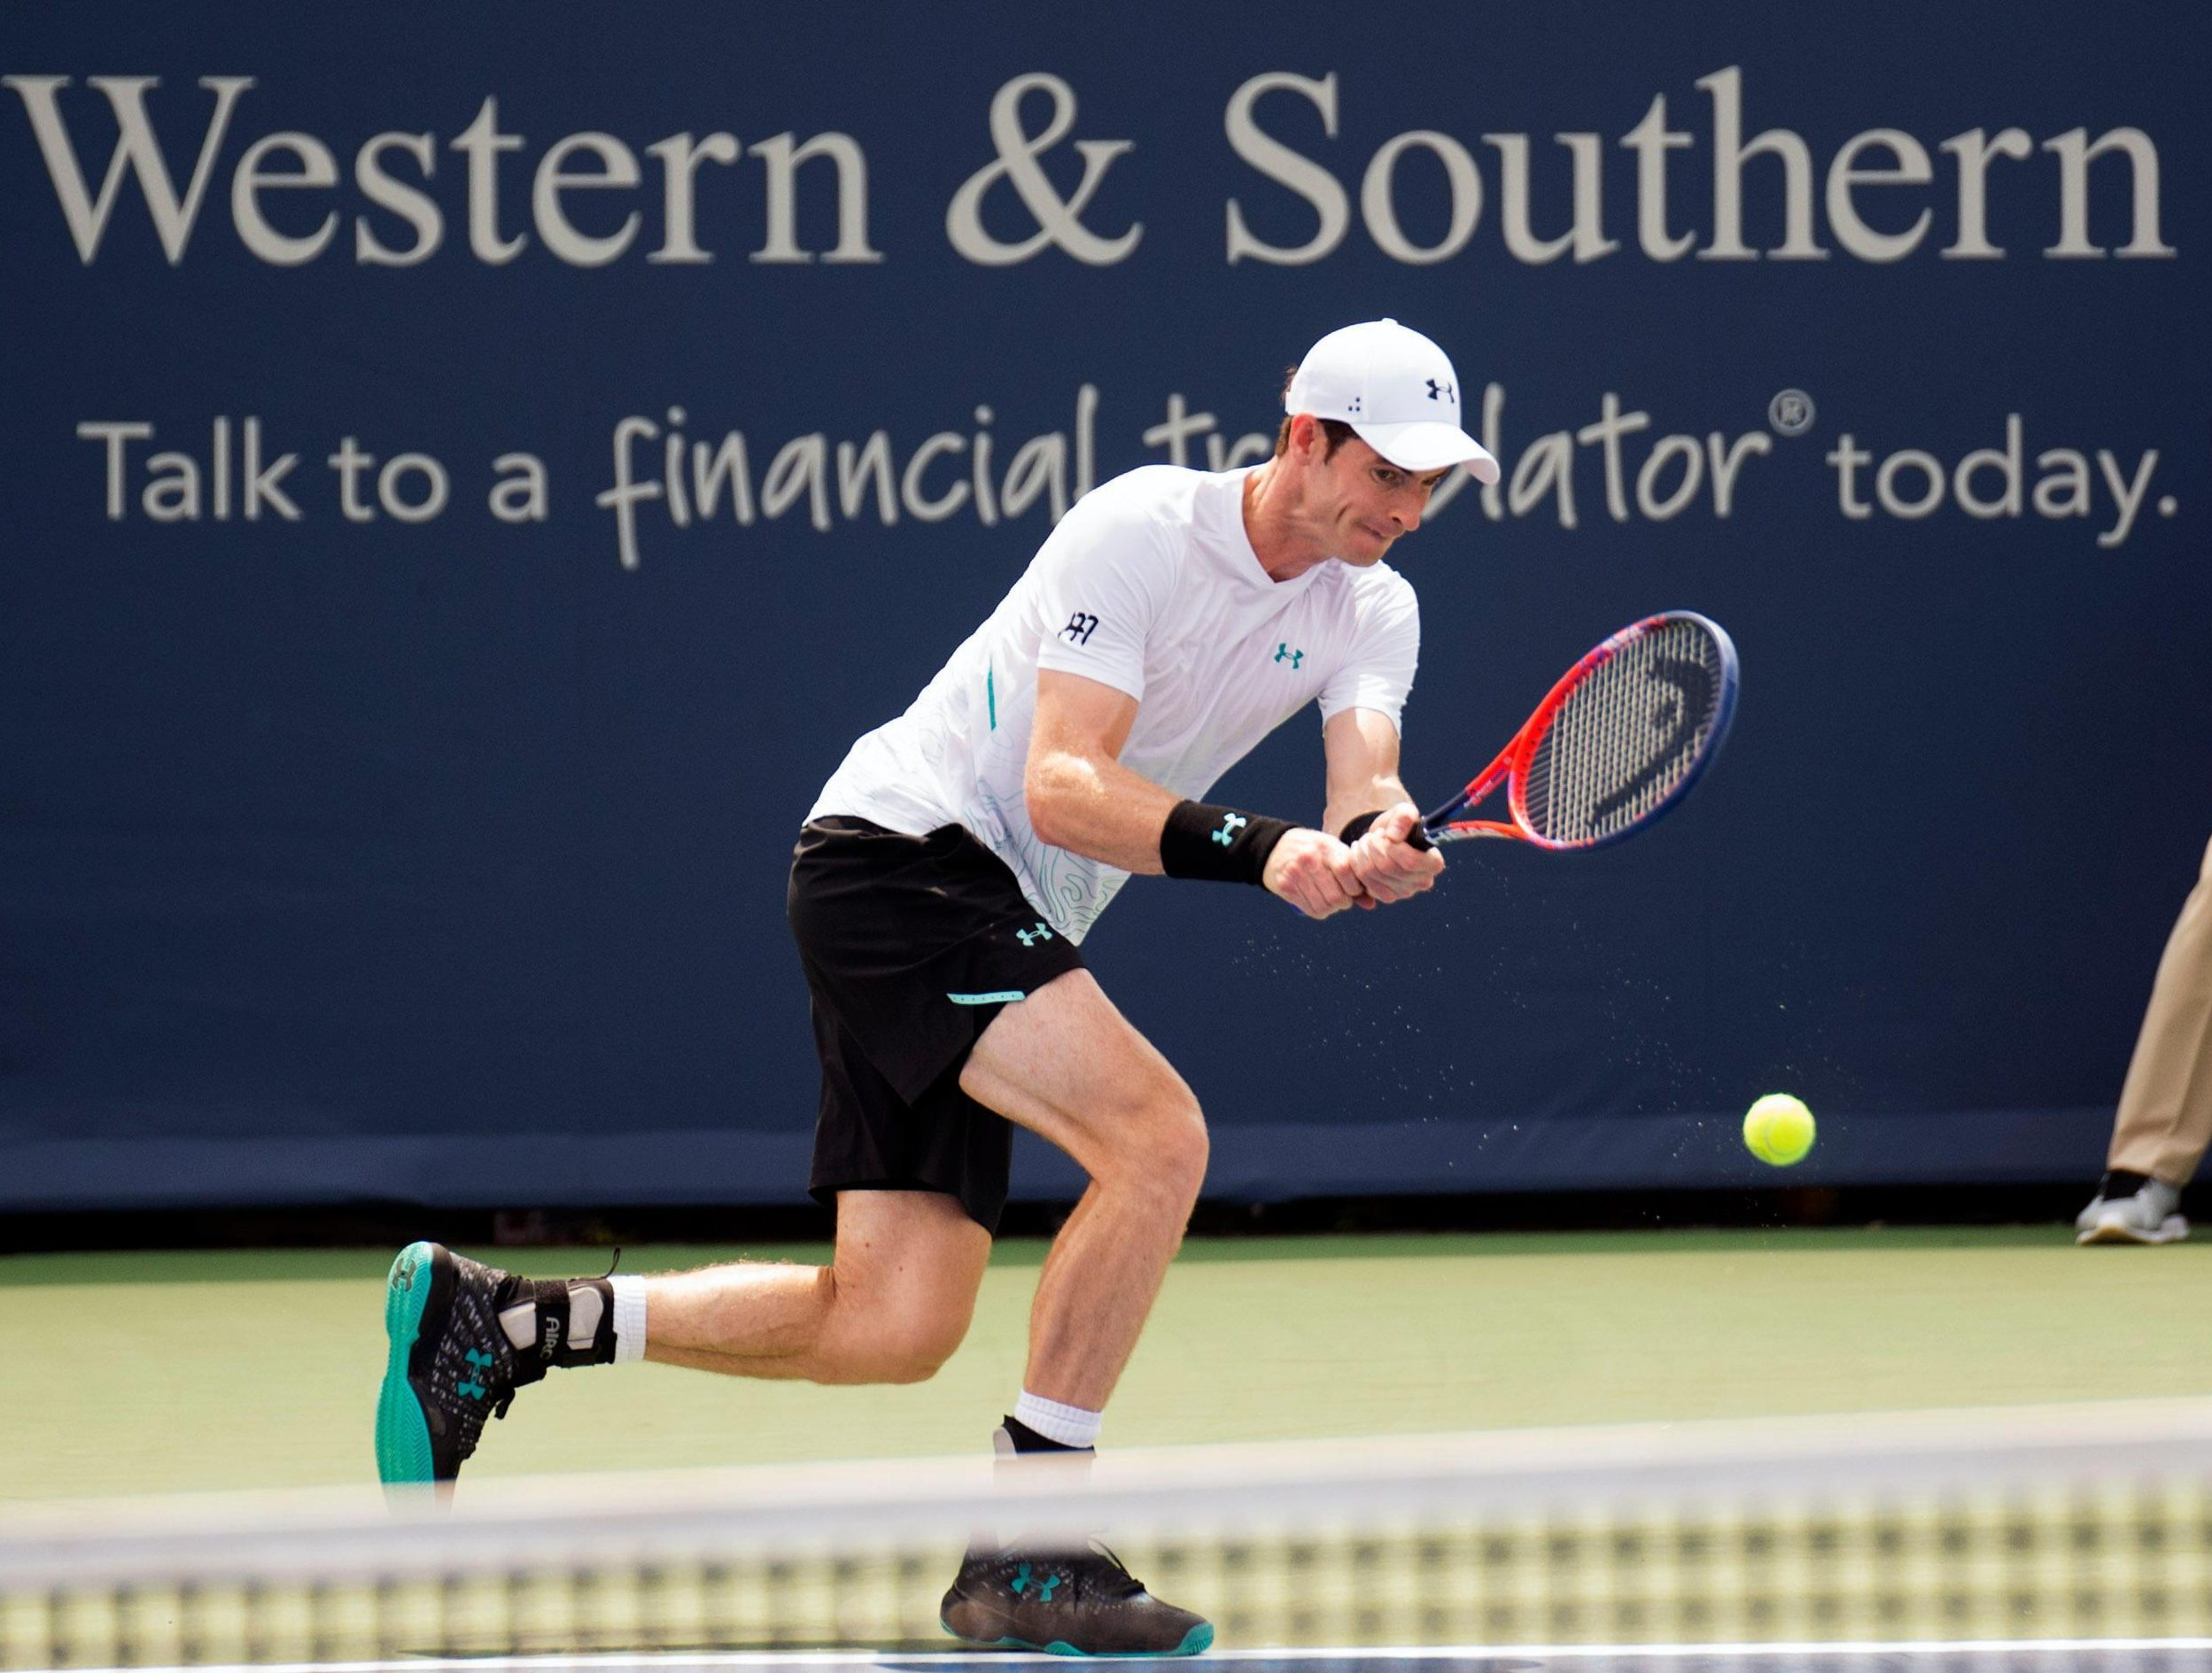 Scot Andy Murray looked rusty after missing the Citi Open in Washington